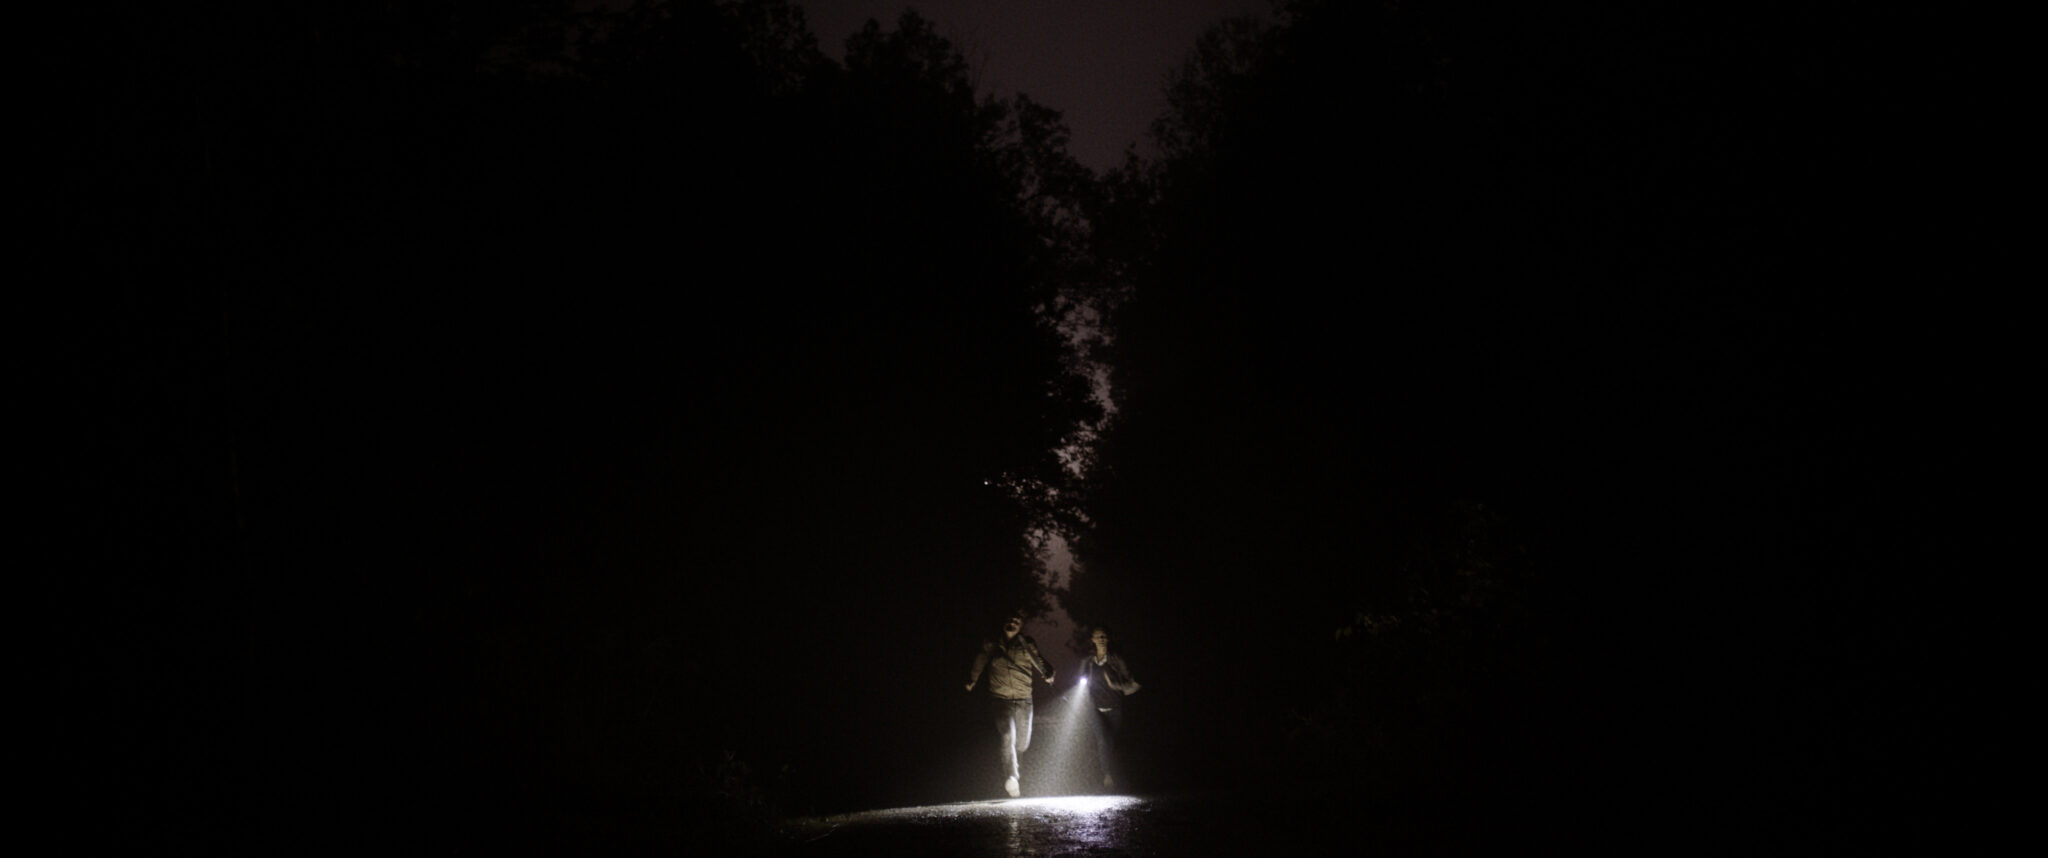 A still from The Toll, featuring Cami and Spencer running in pitch darkness